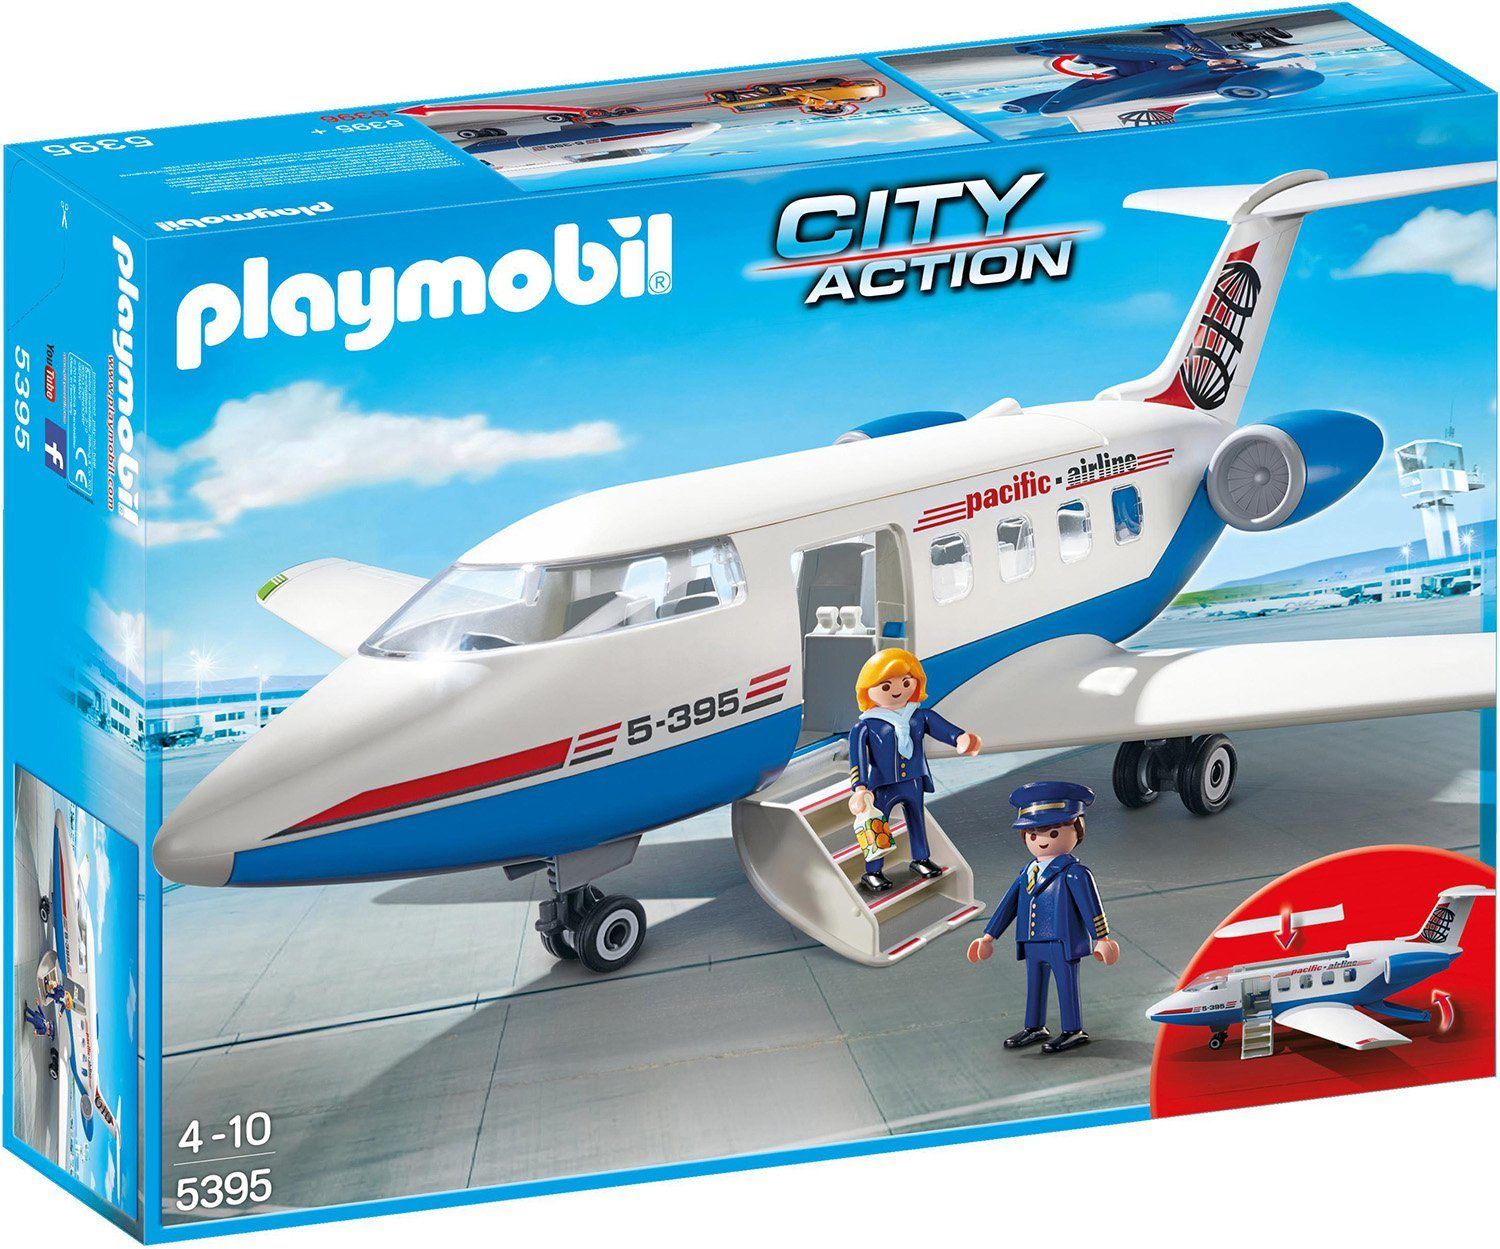 Playmobil® Passagierflugzeug (5395), »City Action«